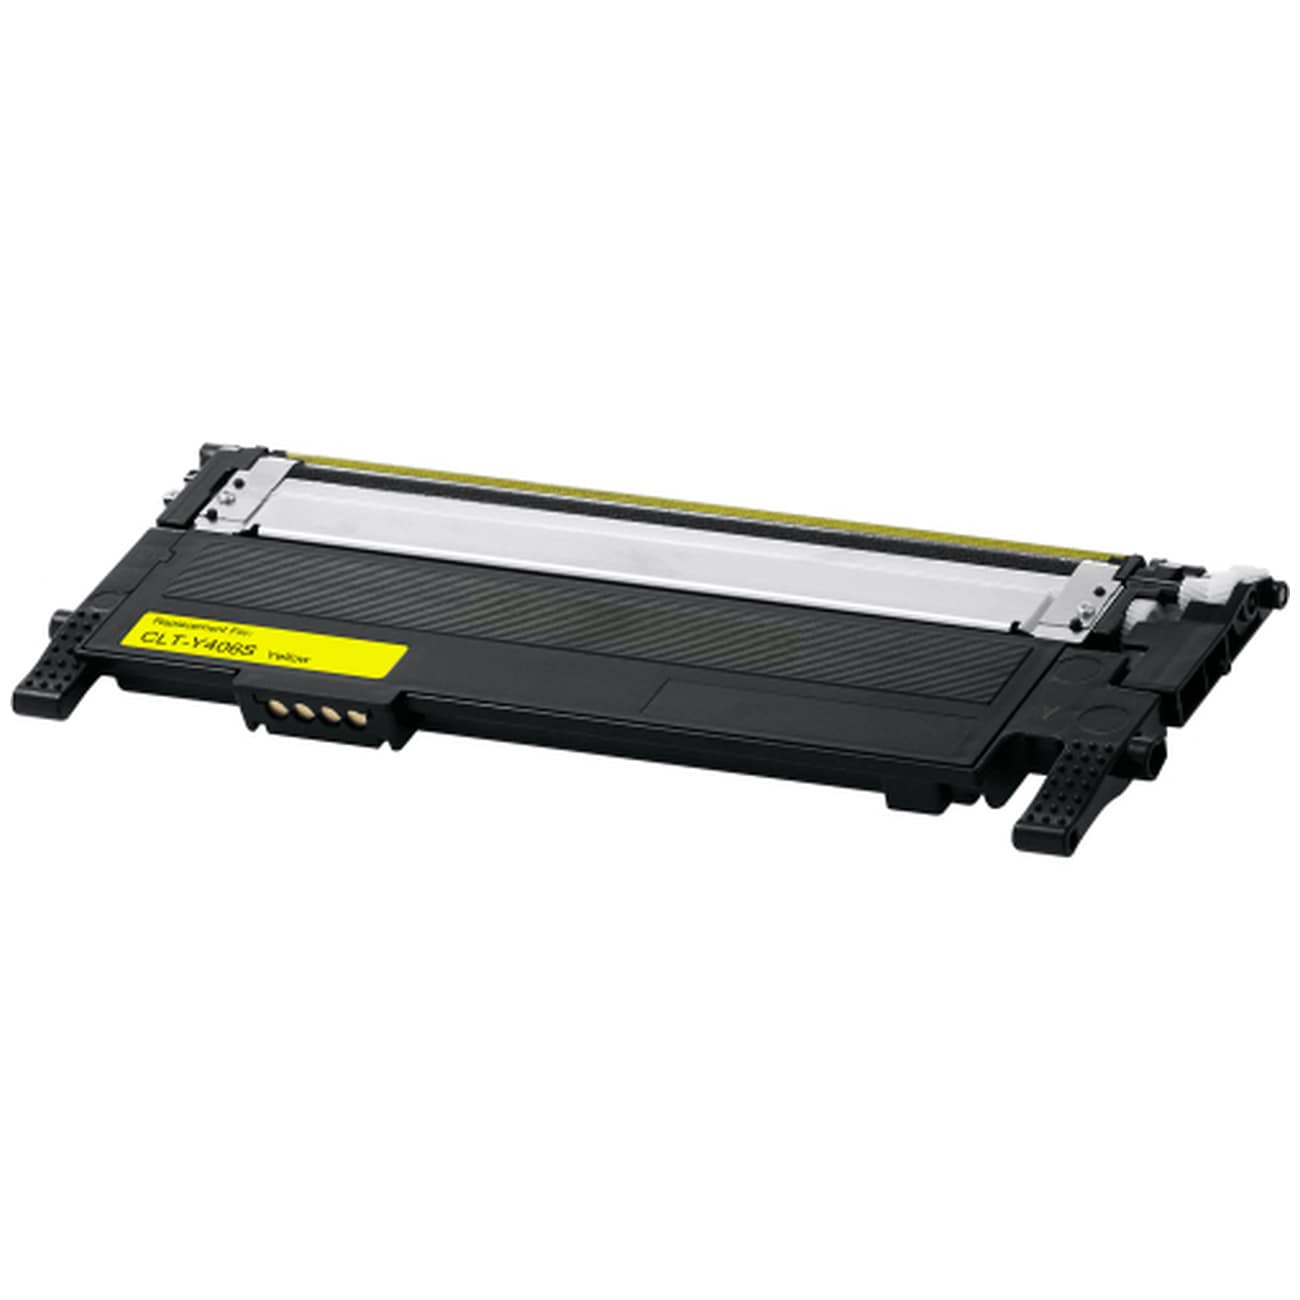 CLT-Y406S Toner Cartridge - Samsung Compatible (Yellow)